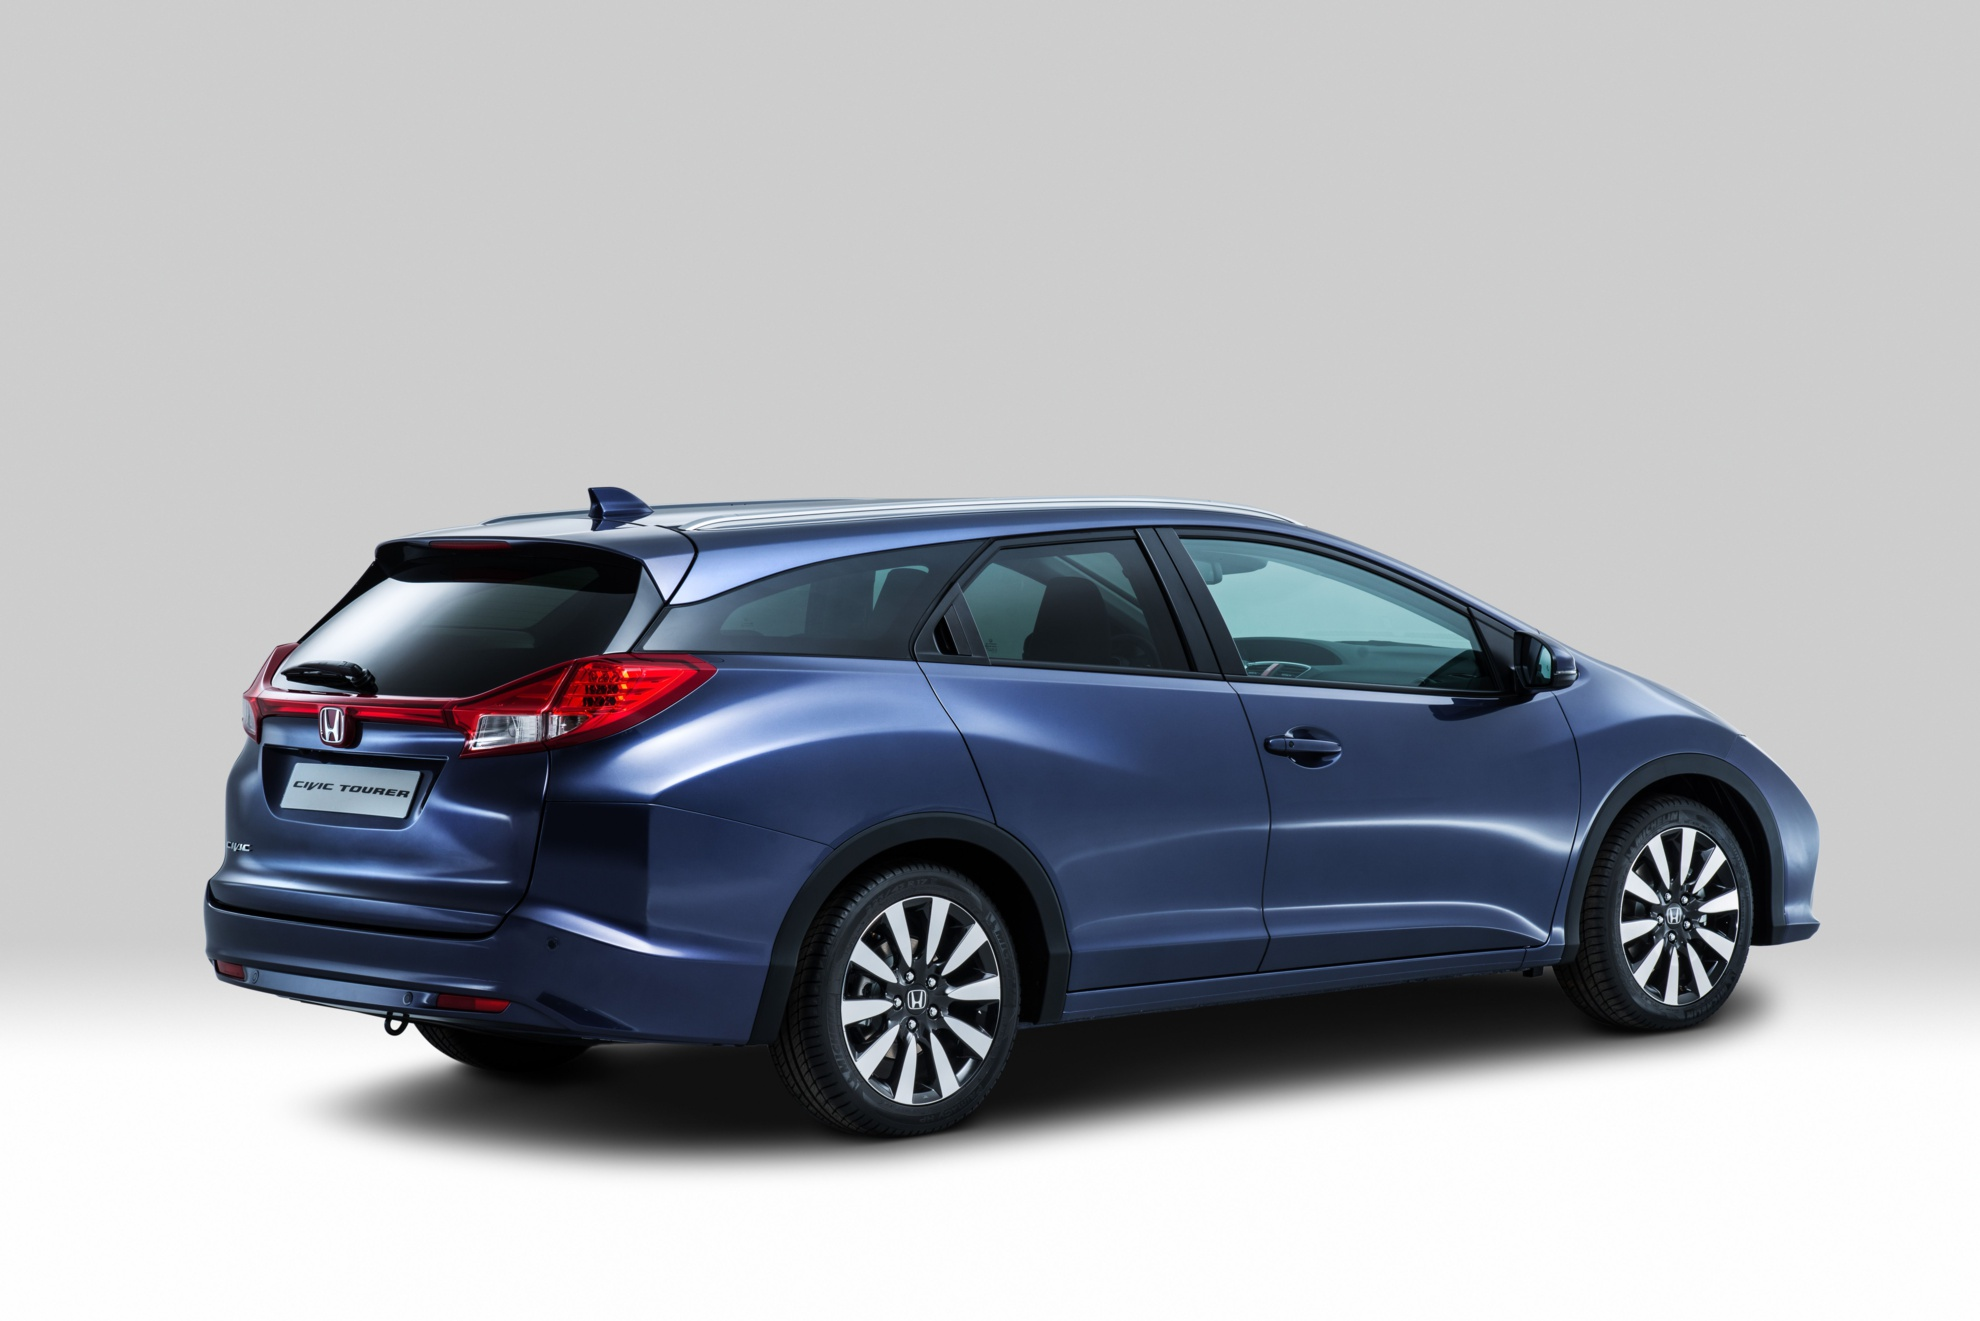 Honda-Civic-Tourer-10